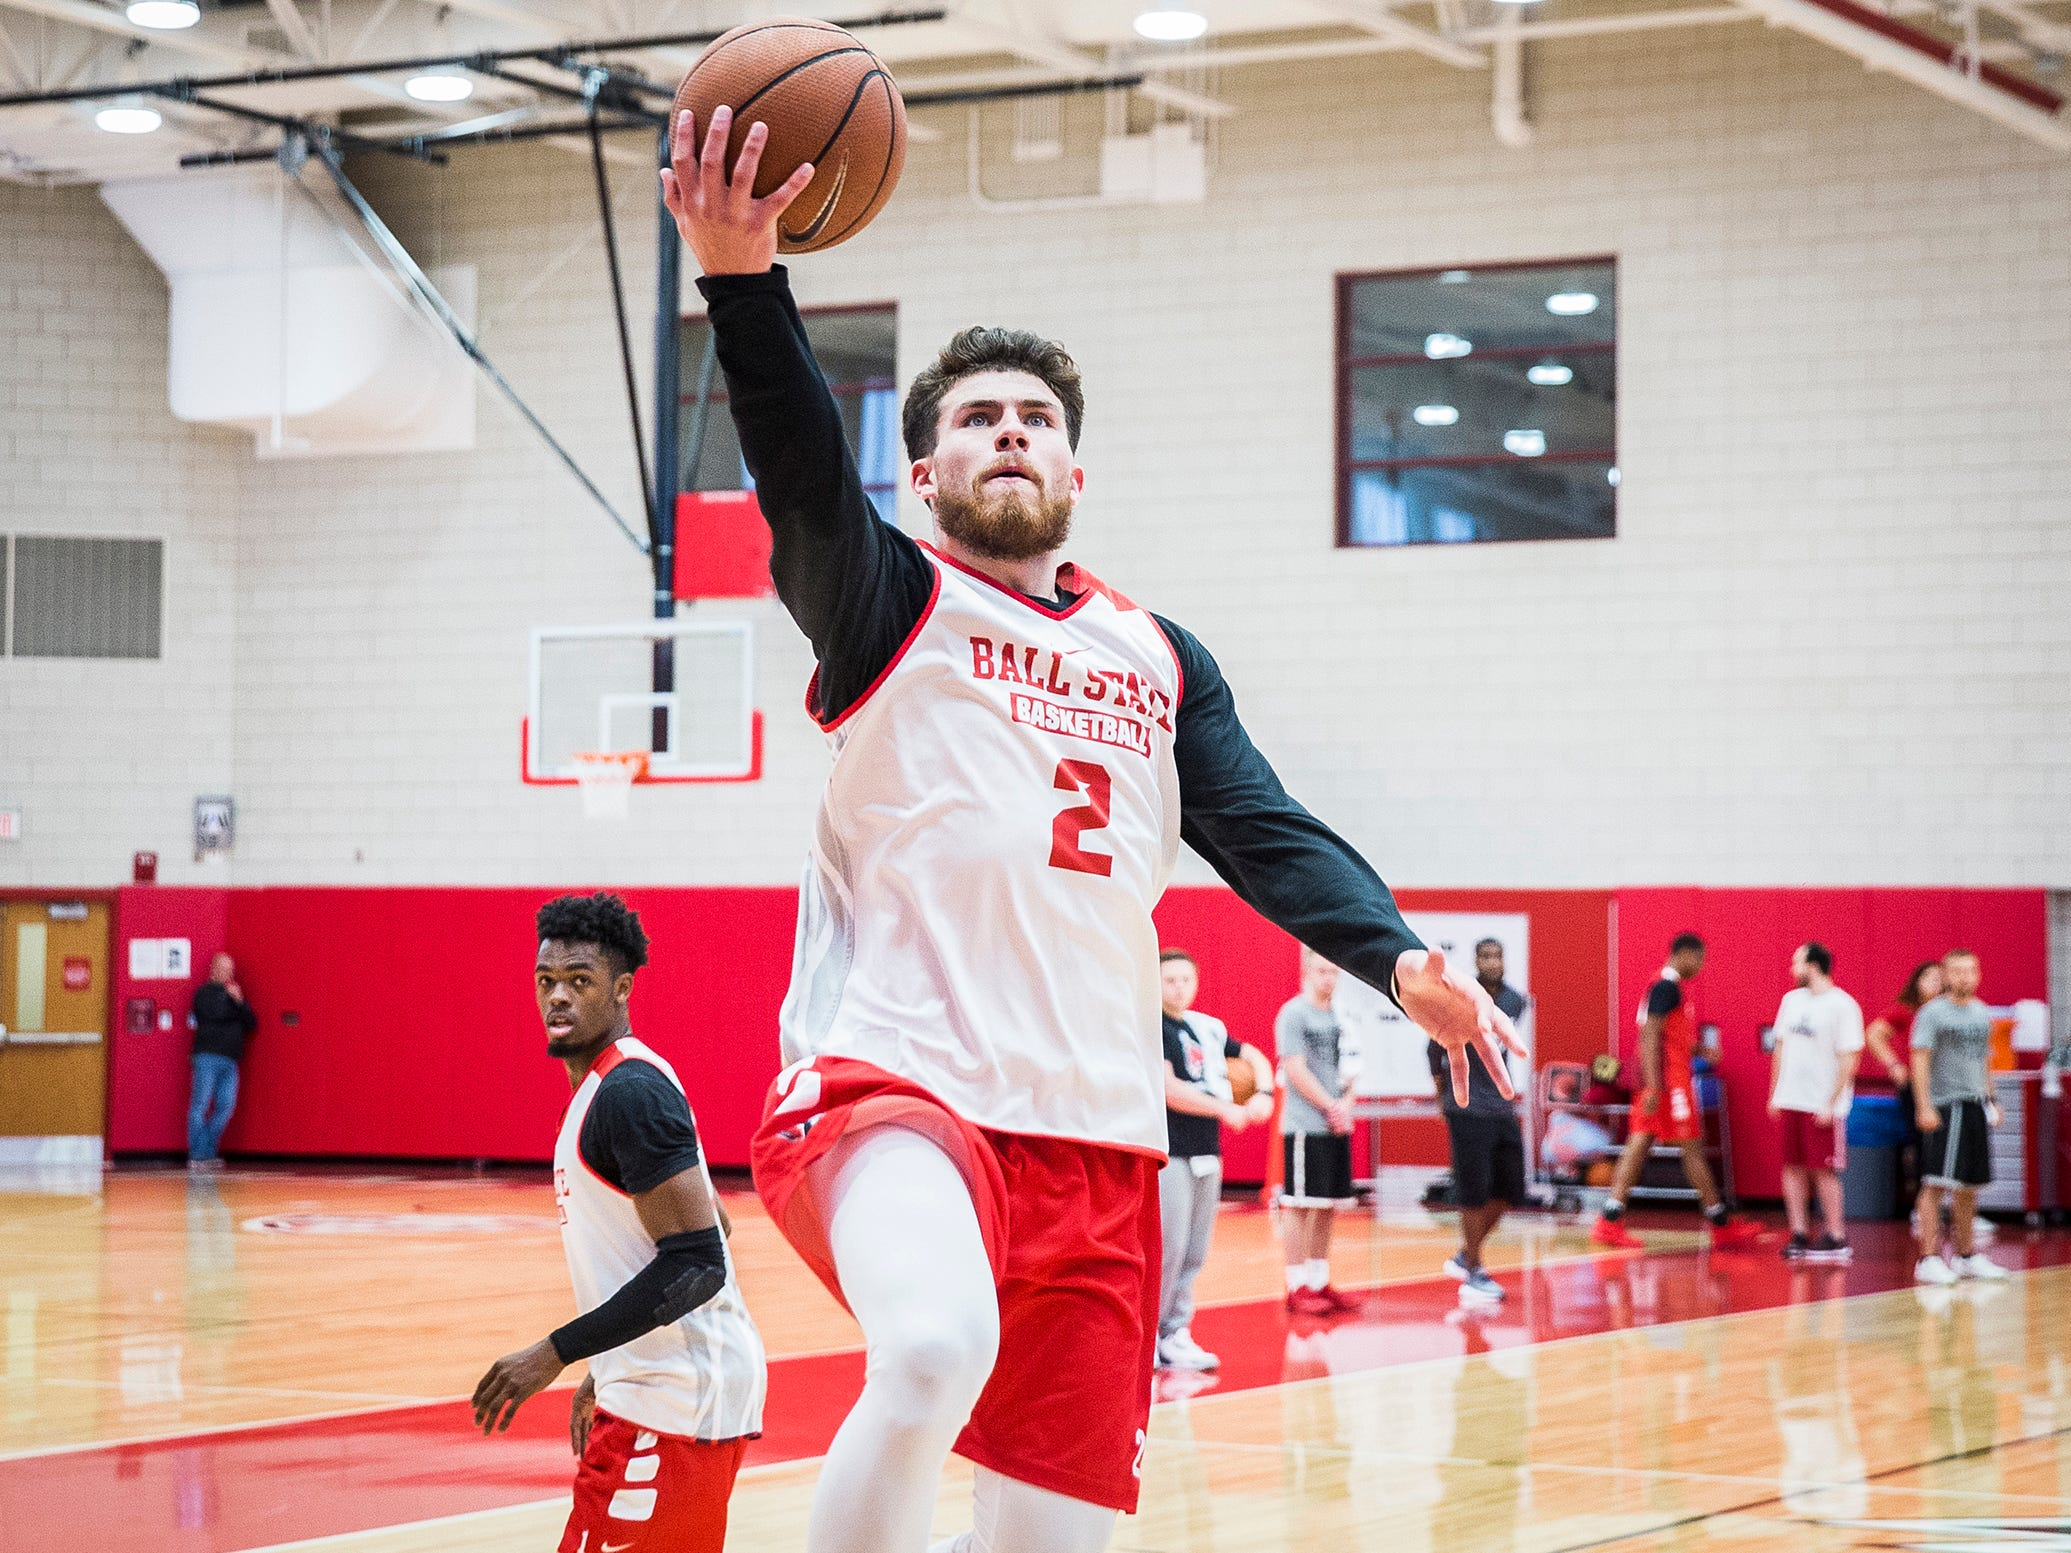 Ball State's Taylor Persons goes for a layup during the team's first open practice Tuesday, Sept. 25, 2018.